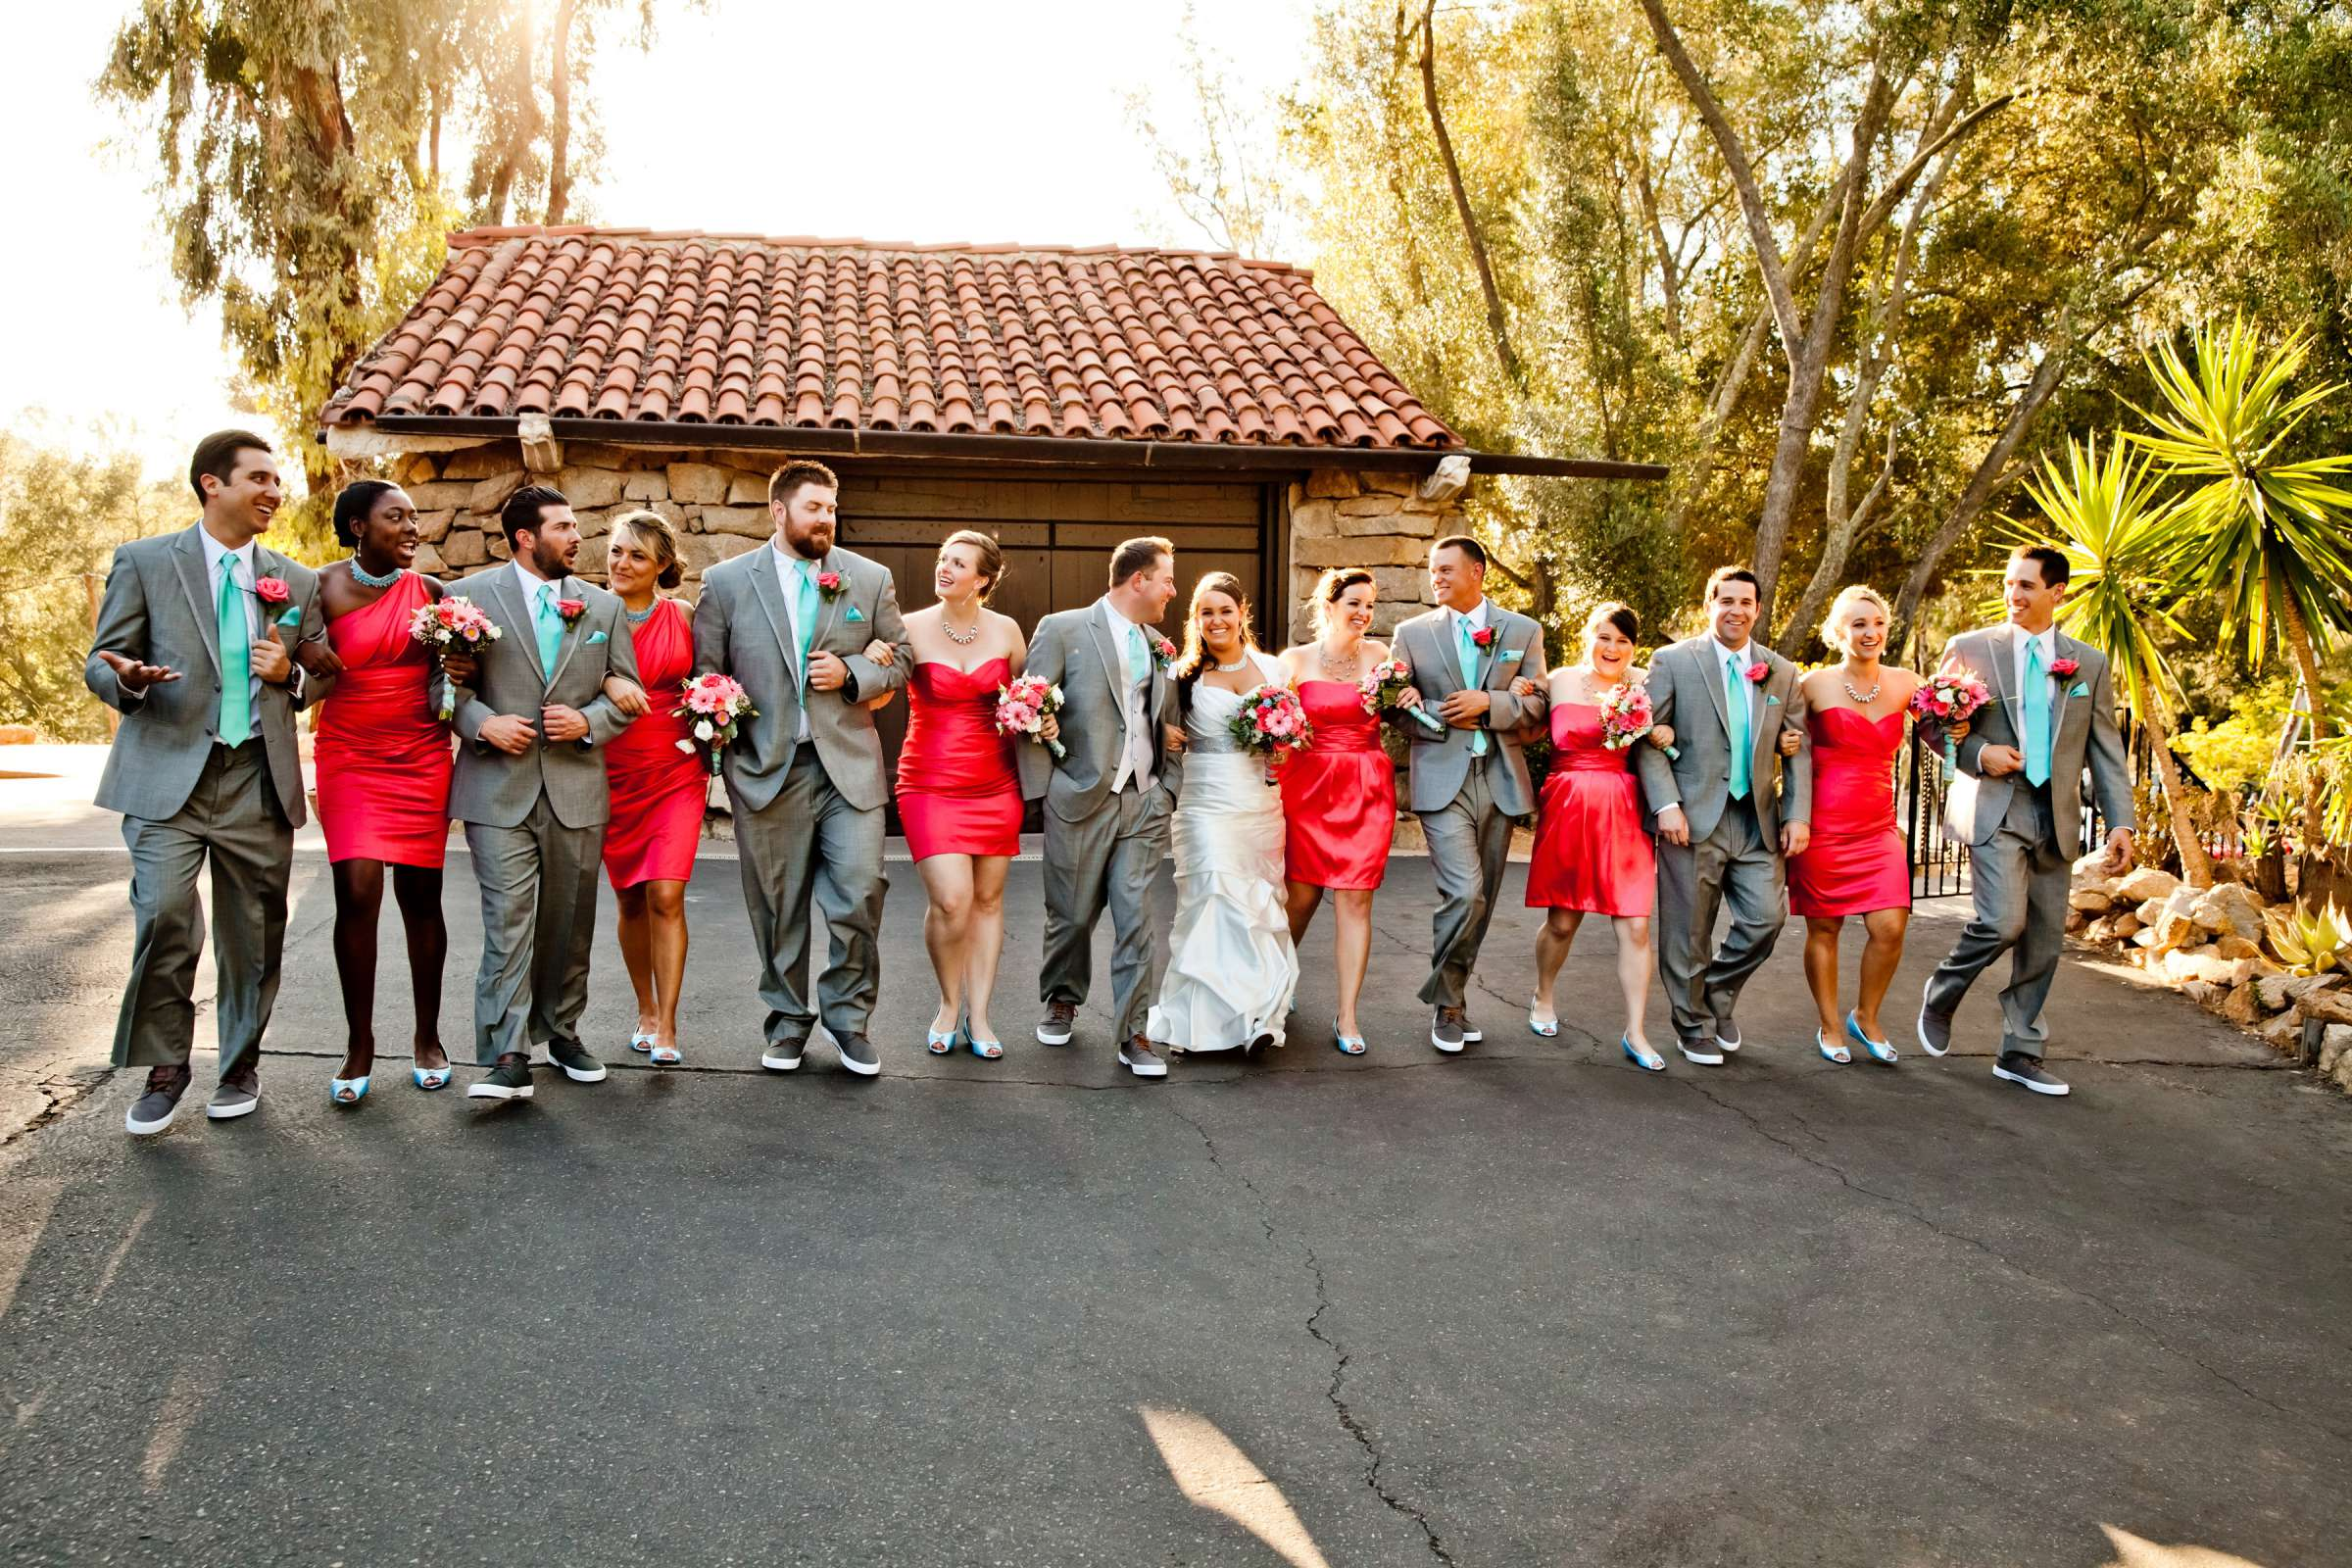 Mt Woodson Castle Wedding, Krista and Donald Wedding Photo #344674 by True Photography